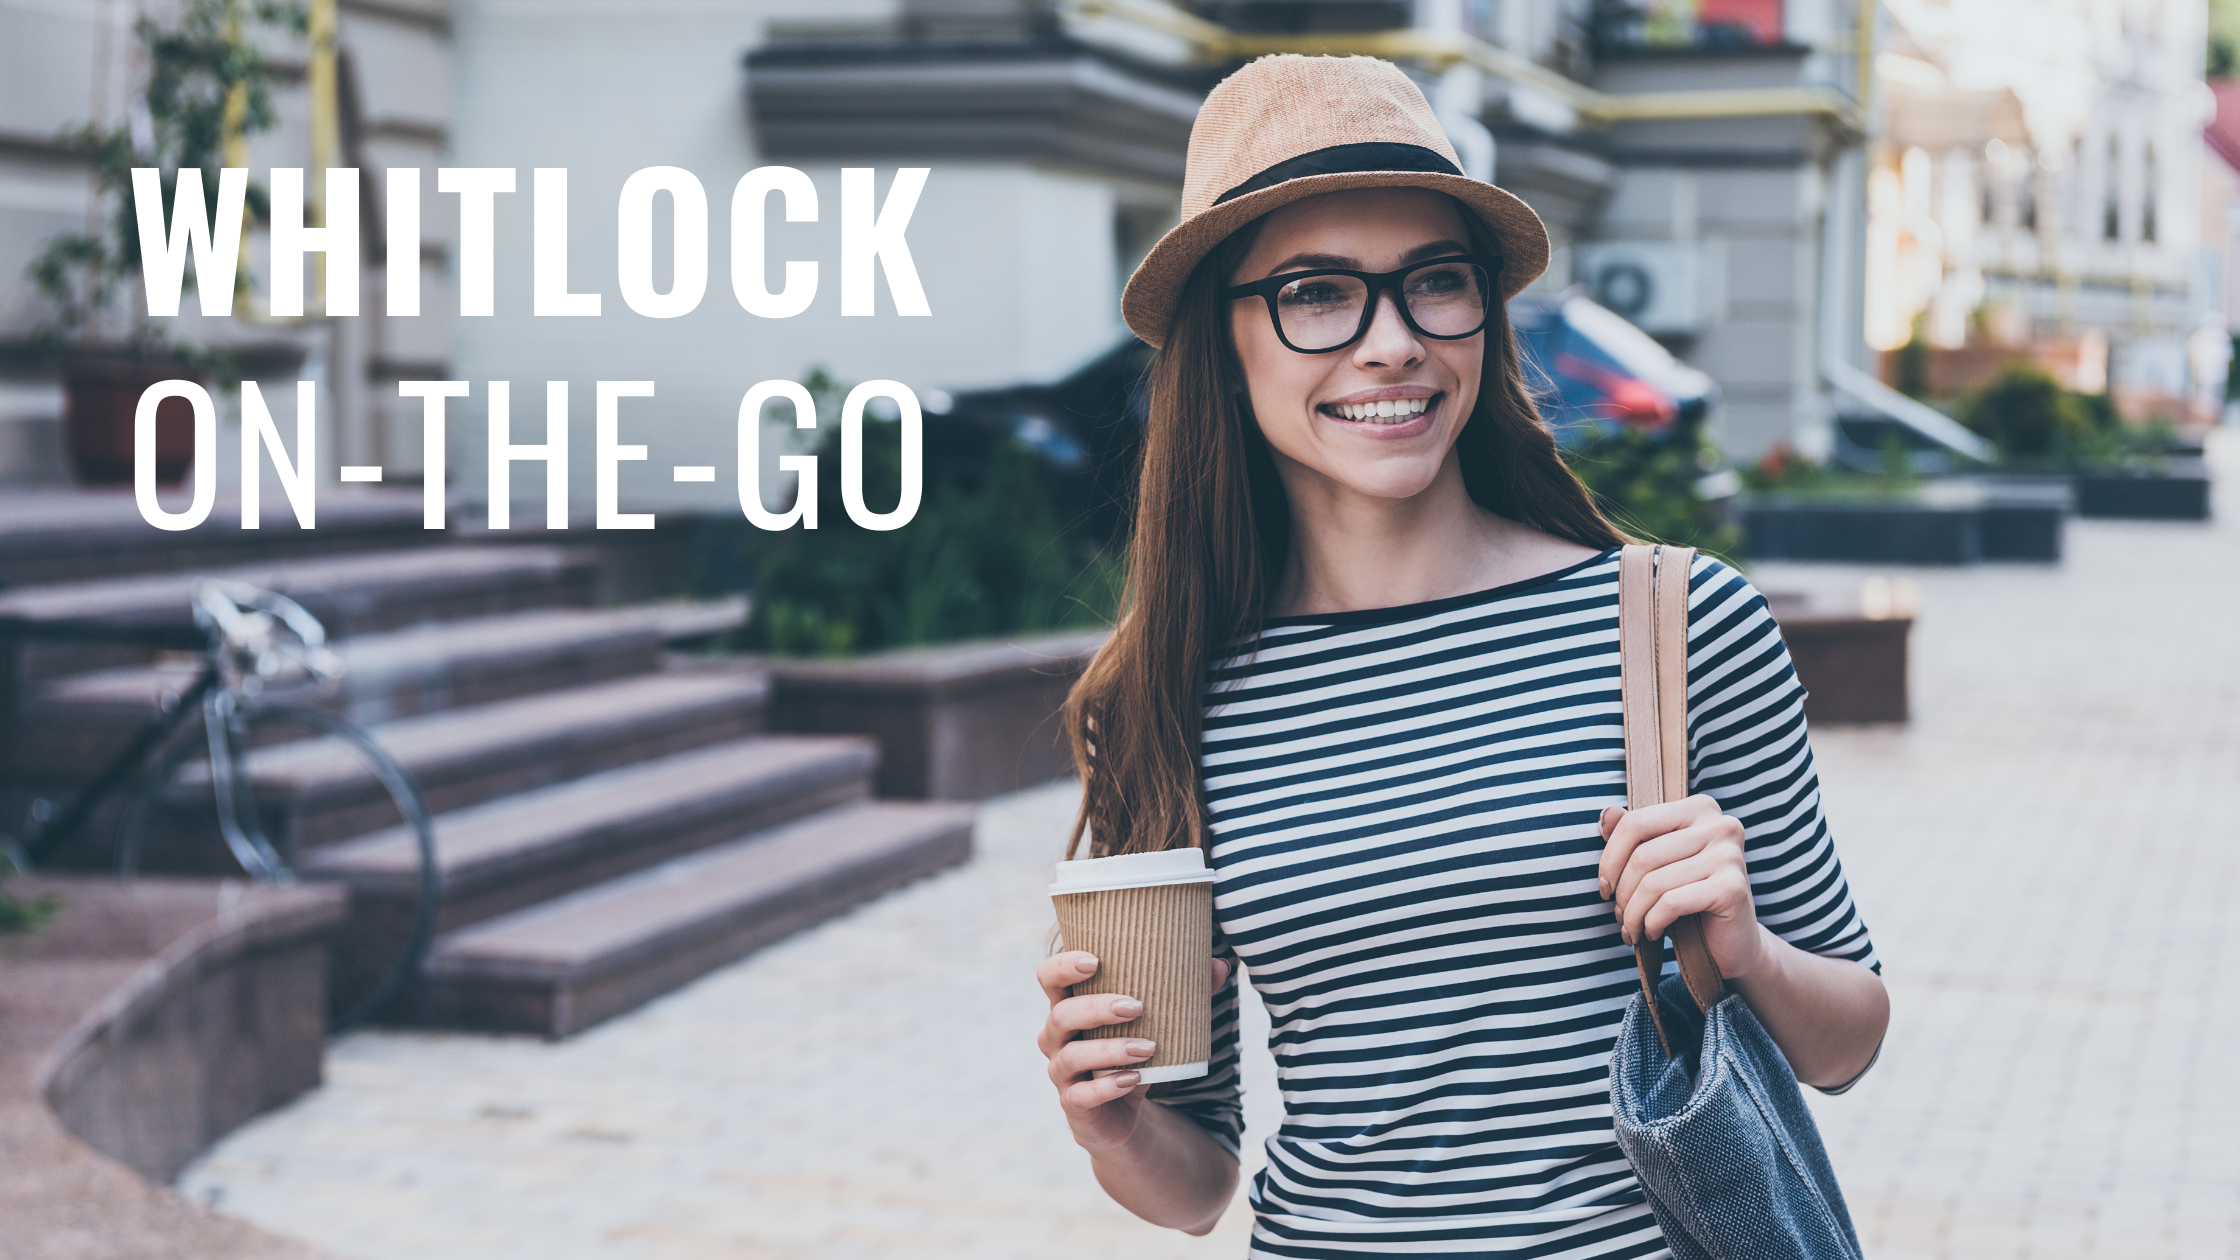 Whitlock-On-The-Go: A Patient Testimonial